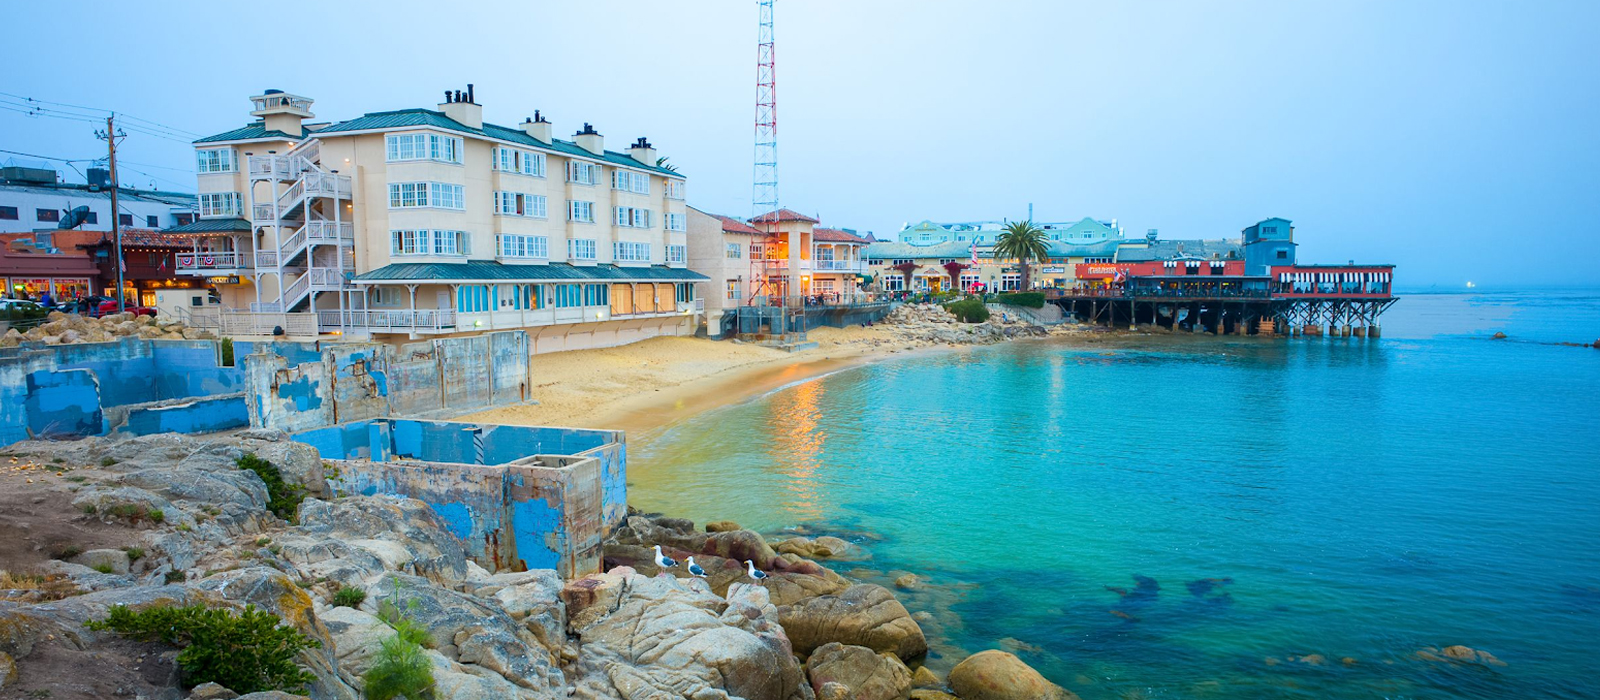 NESTLED JUST MINUTES FROM THE MONTEREY BAY AQUARIUM AND CANNERY ROW ROSEDALE INN IS CLOSE TO A VARIETY OF WATER ACTIVITIES, TRAILS, AND SCENIC SIGHTS